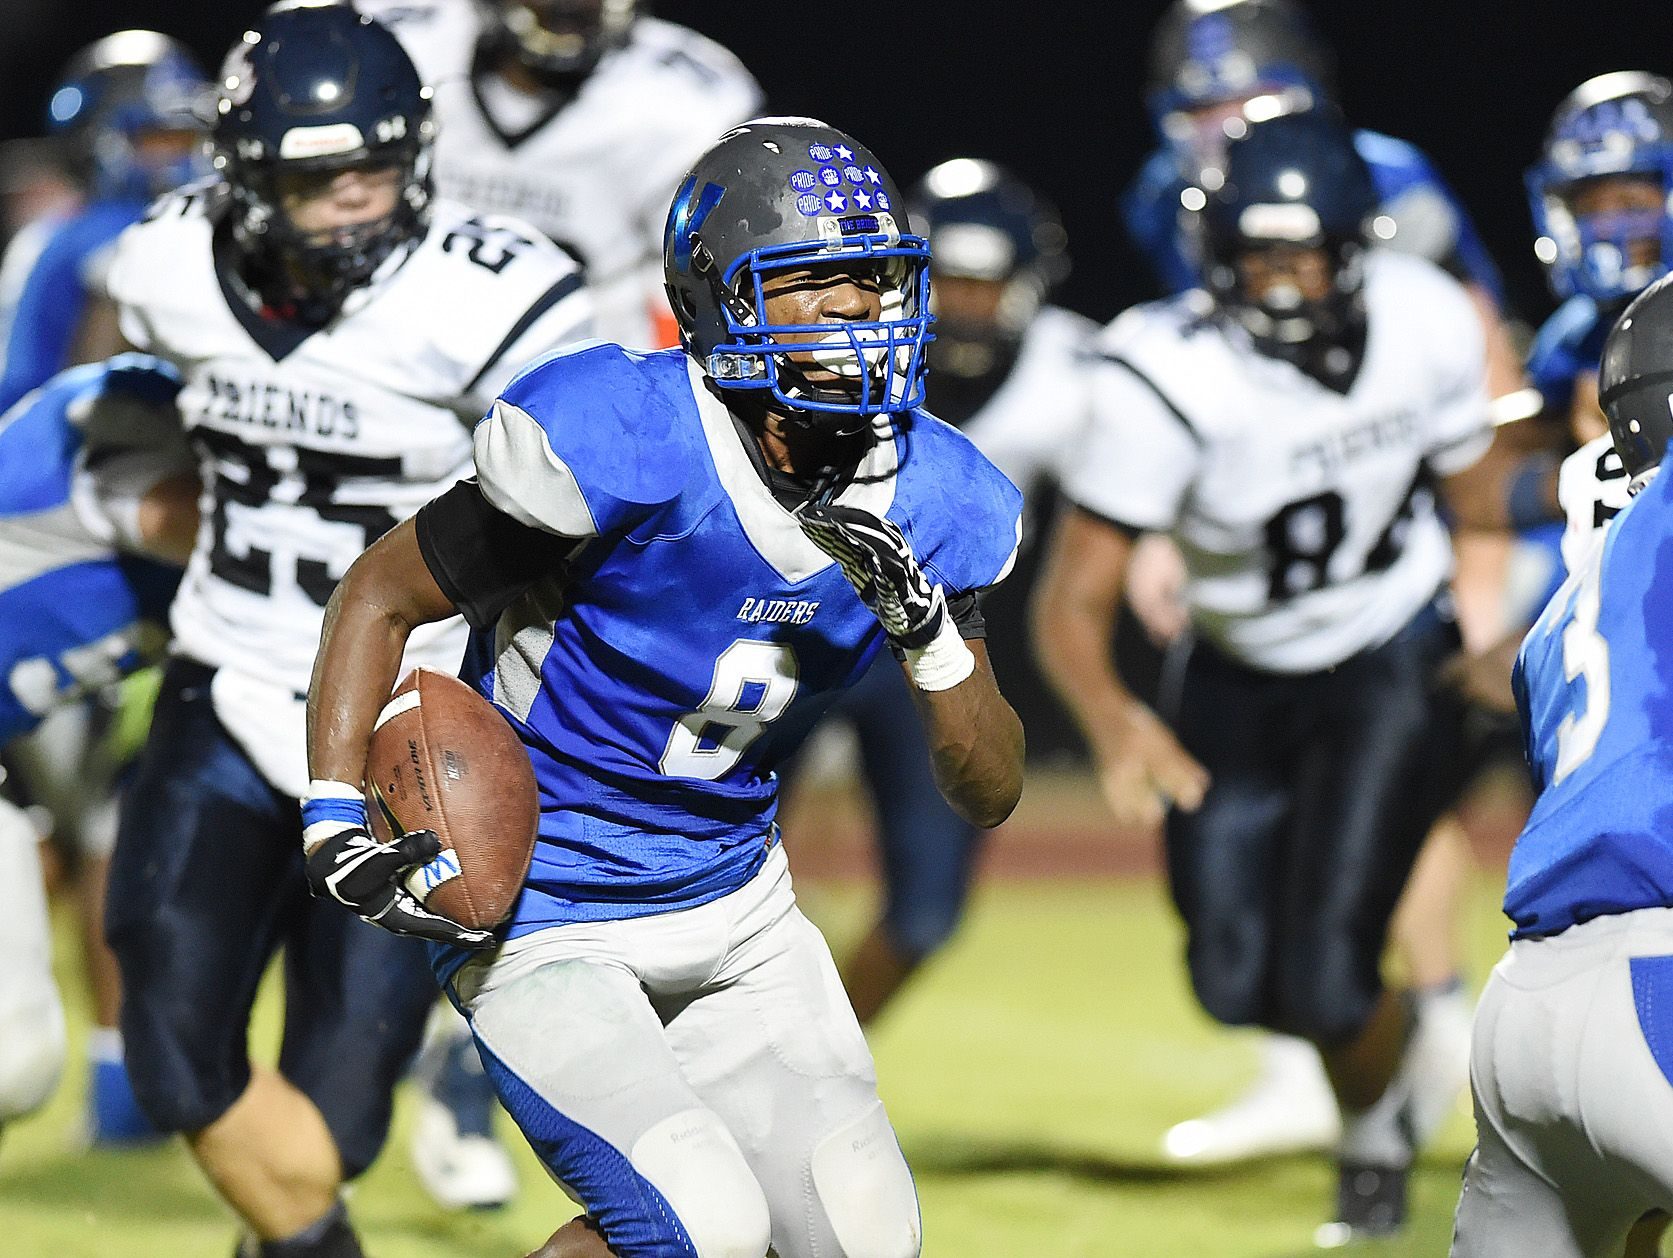 Woodbridge's Jamon Kane, seen here against Wilmington Friends, ran for two rushing touchdowns as the Blue Raiders ended the regular season 10-0 with a 3907 win over Delmar on Friday.